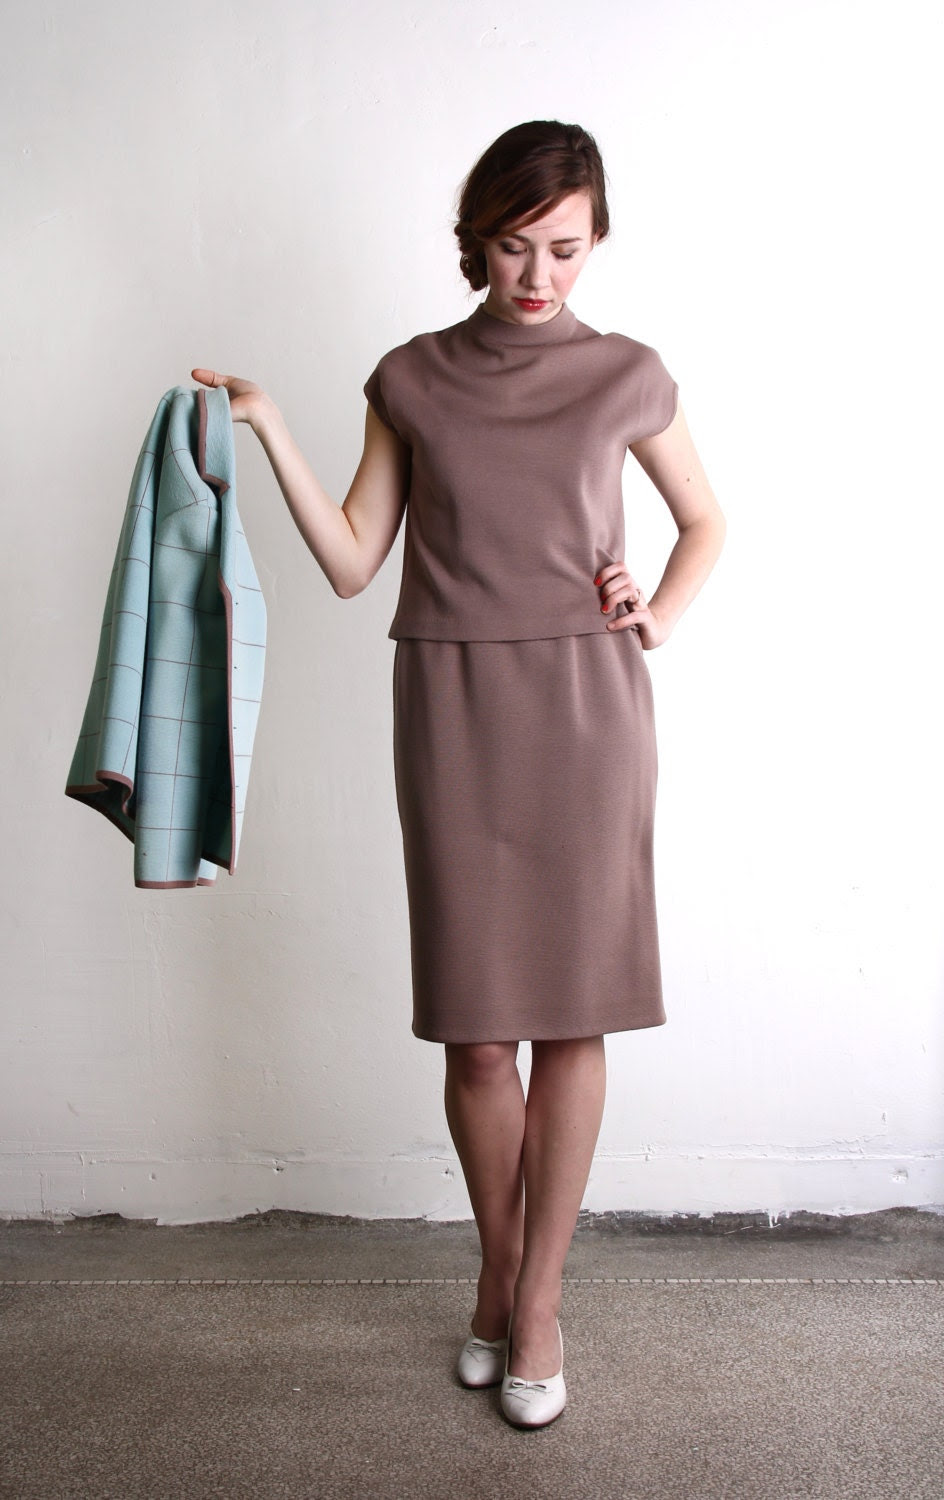 3 Piece Suit . Mint Chocolate Knit Top Jacket, Skirt . Business Attire - VeraVague